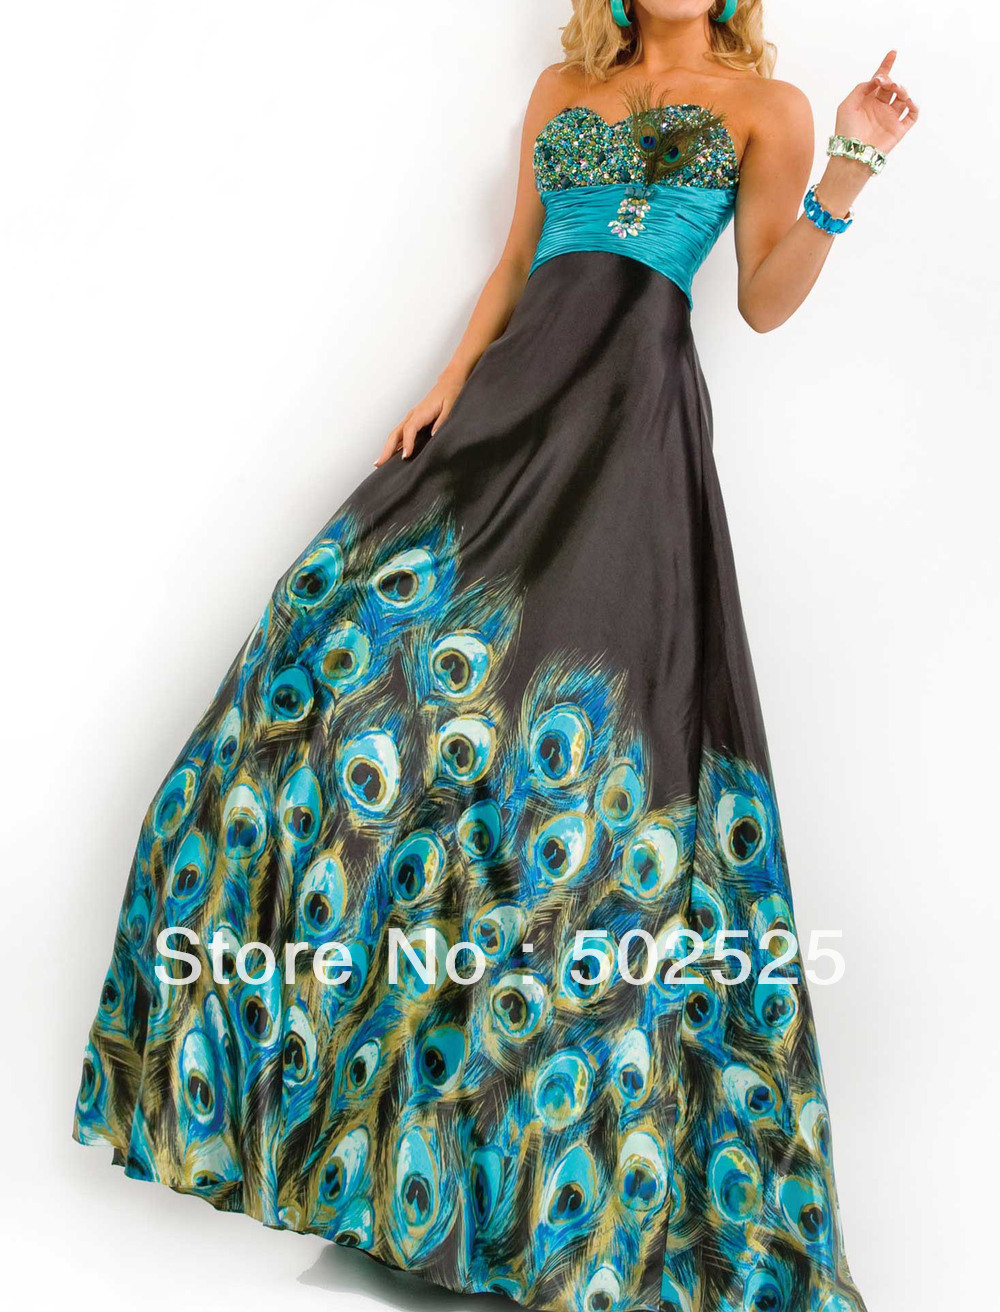 Printed Turquoise Colors Fabric 100% Beading Handwork Sweetheart ...